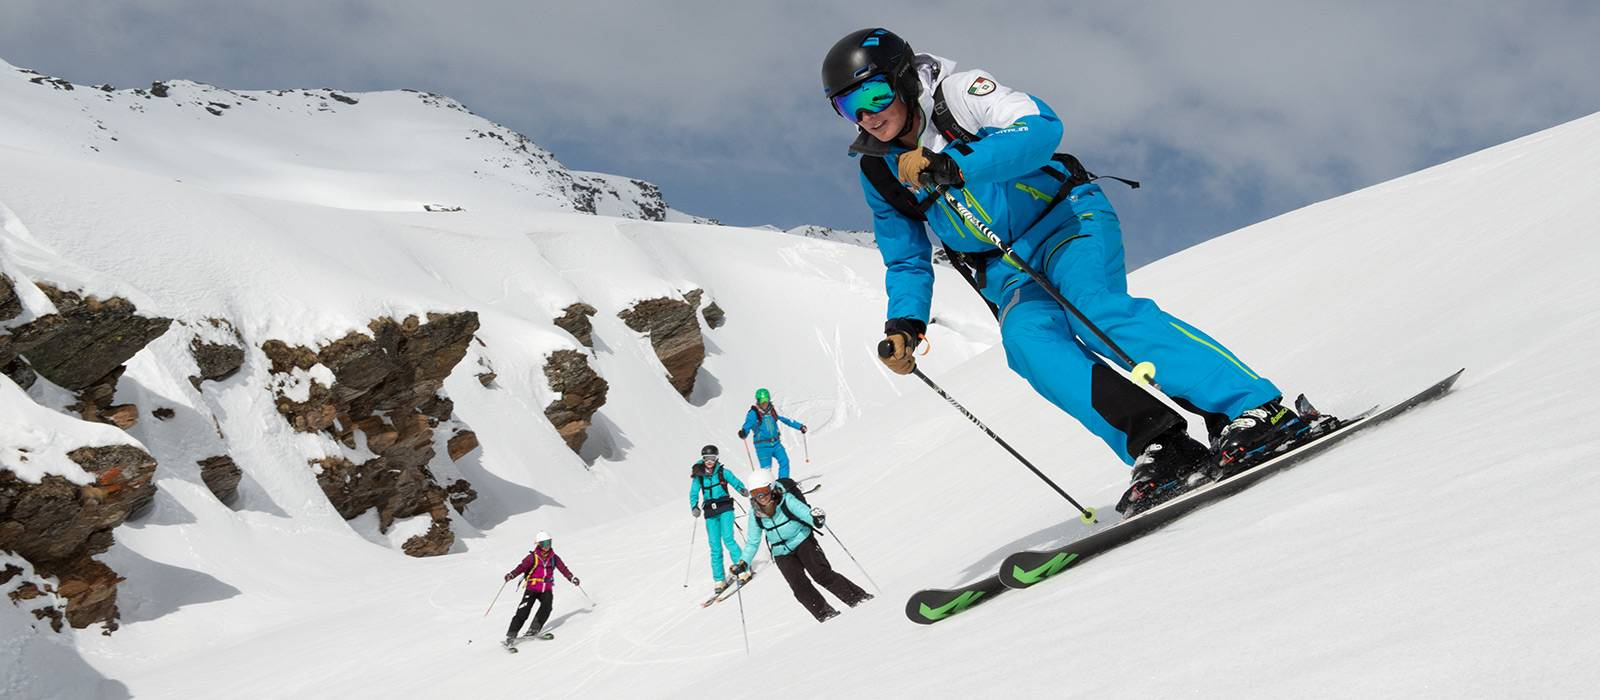 Ski lessons for intermediate and experts